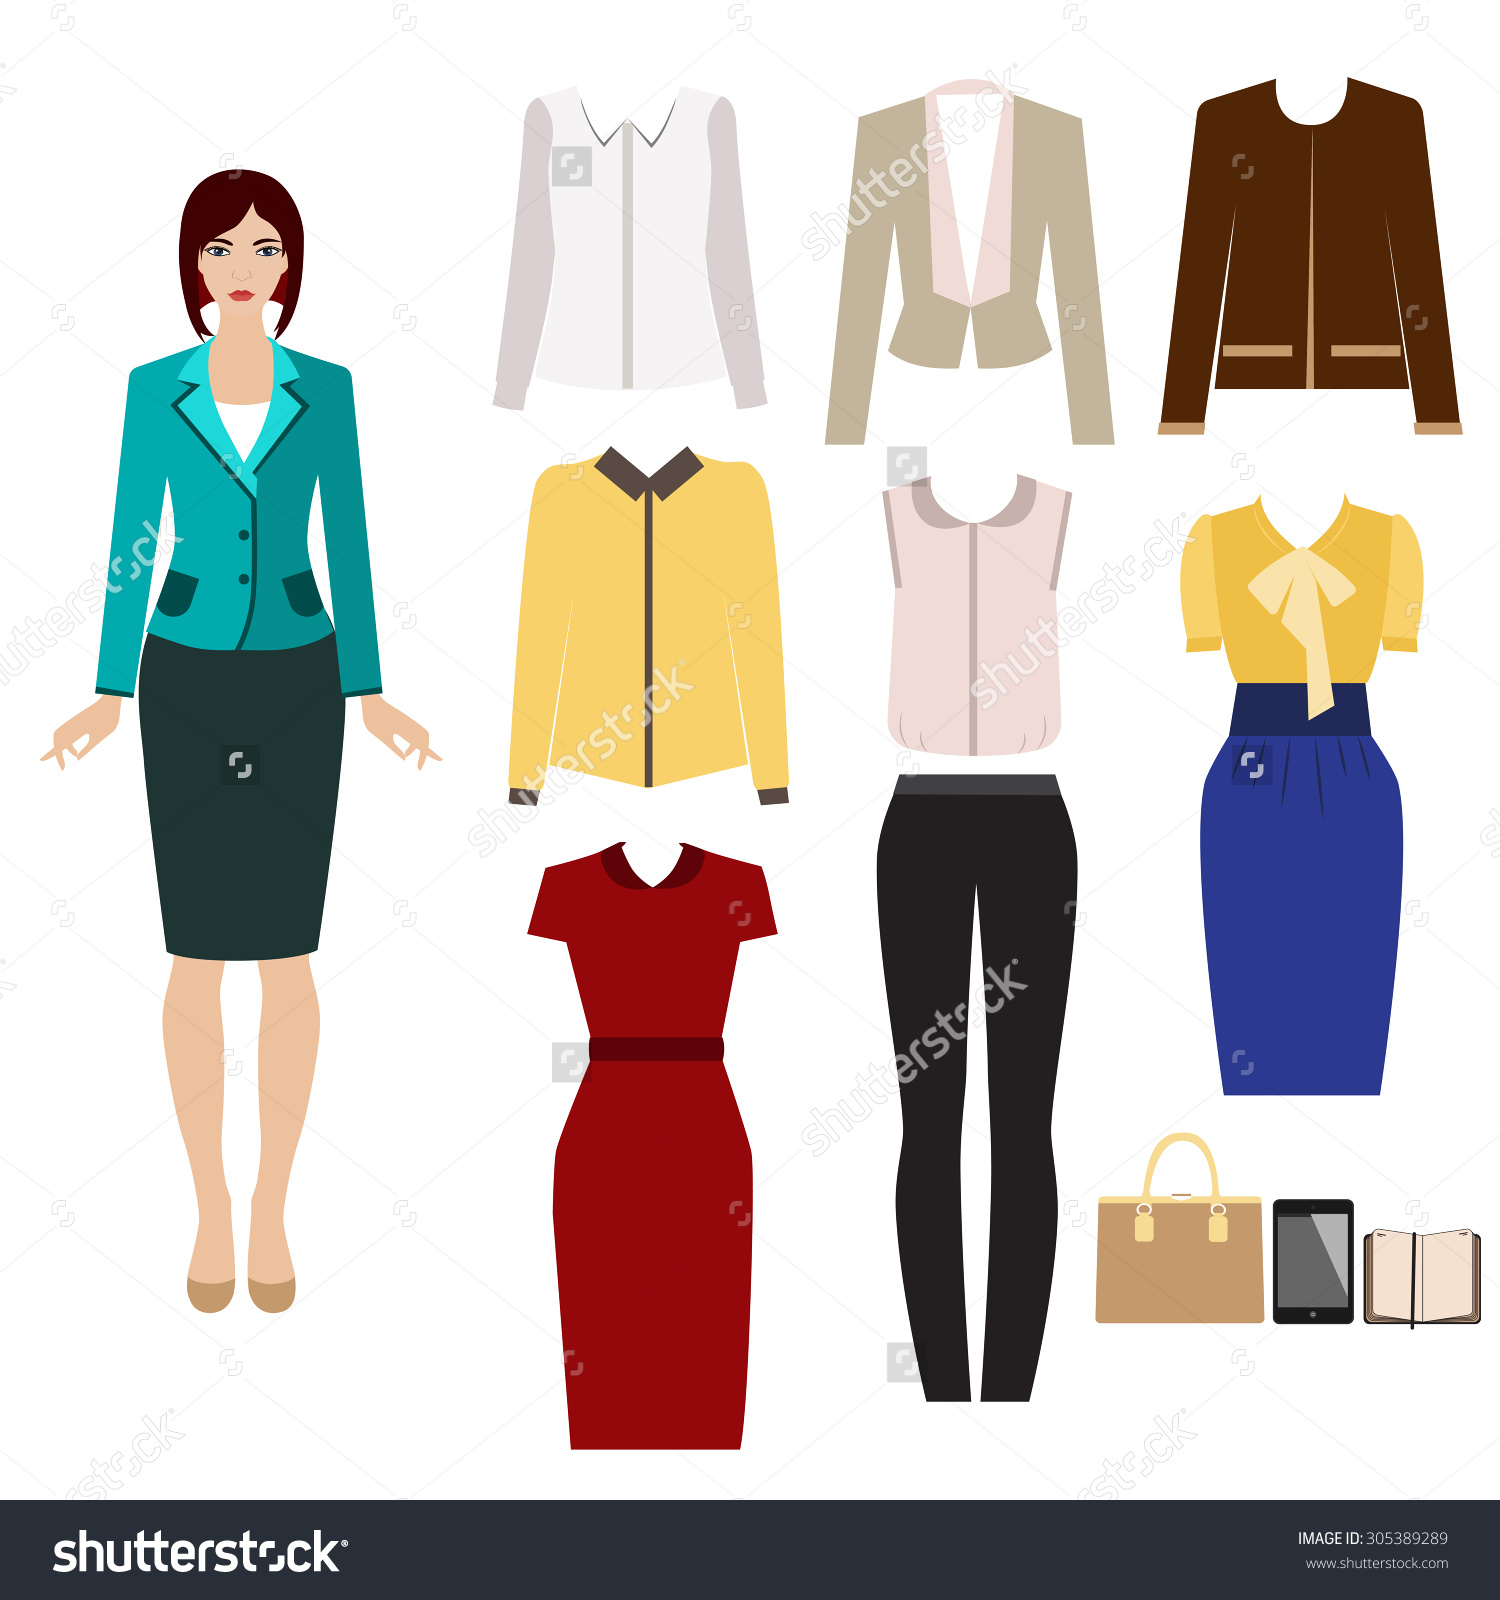 Business Outfit Paper Doll Set Elegant Stock Vector 305389289.